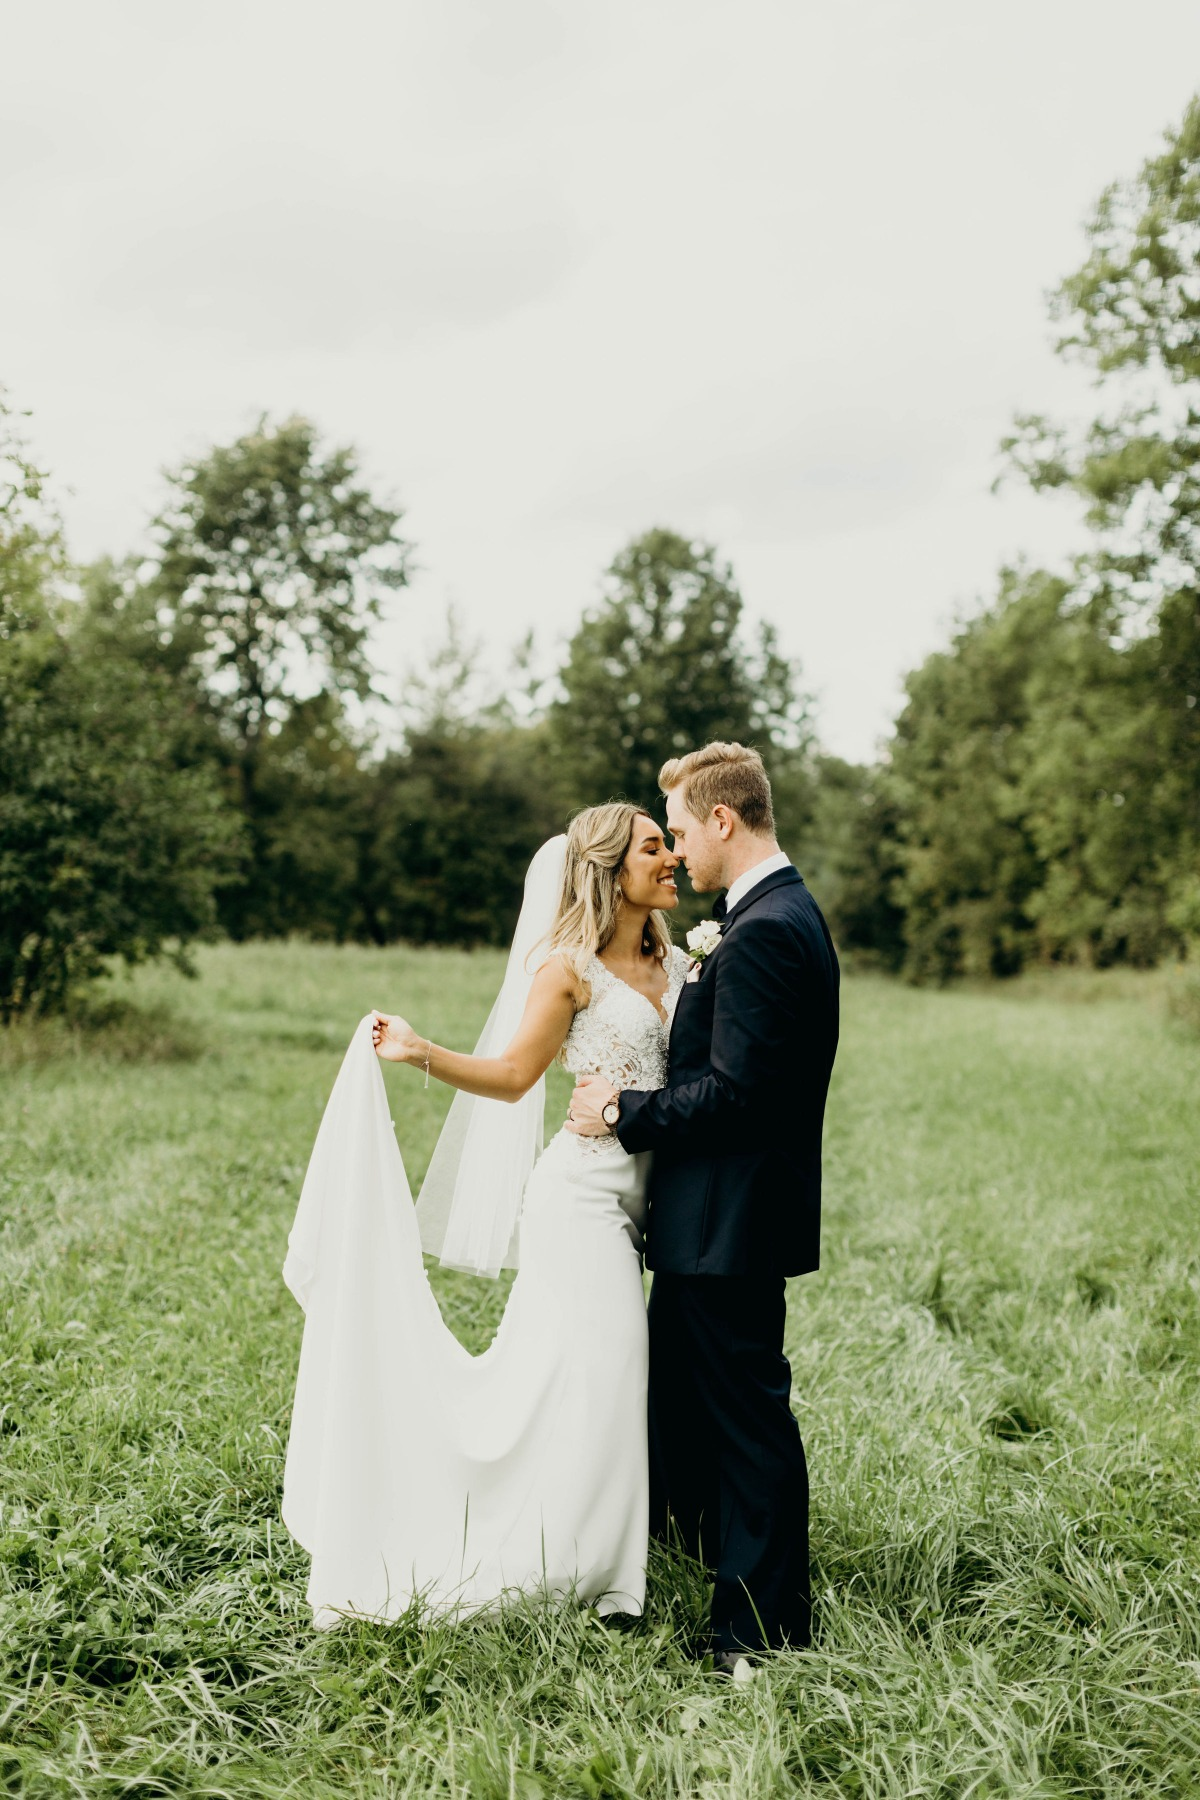 sweet bride and groom wedding photo idea